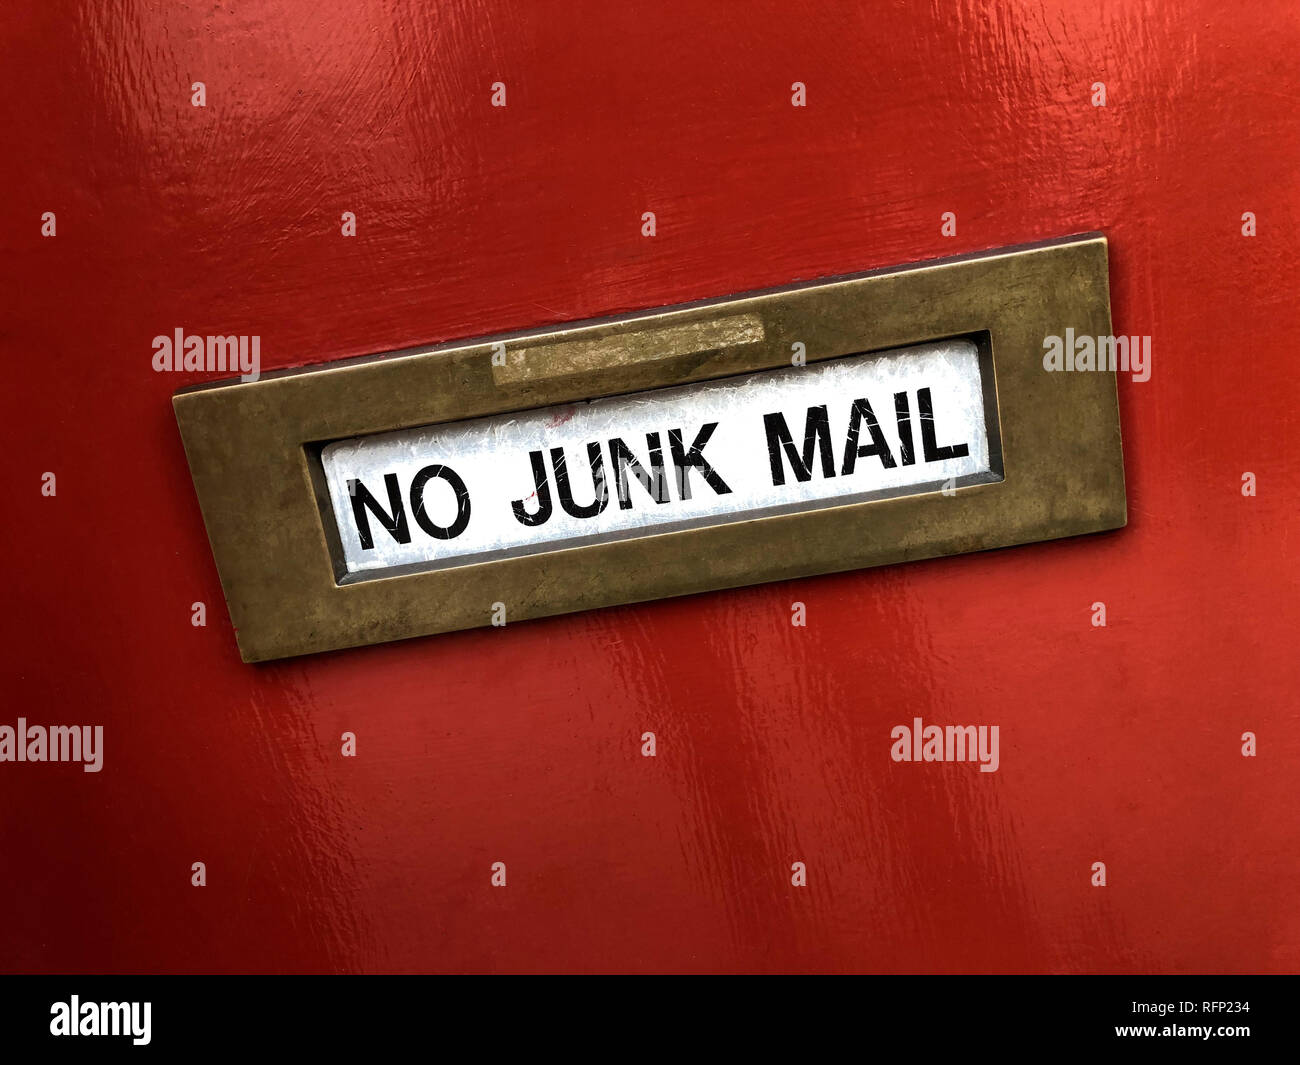 Letter box - No Junk Mail - Stock Image